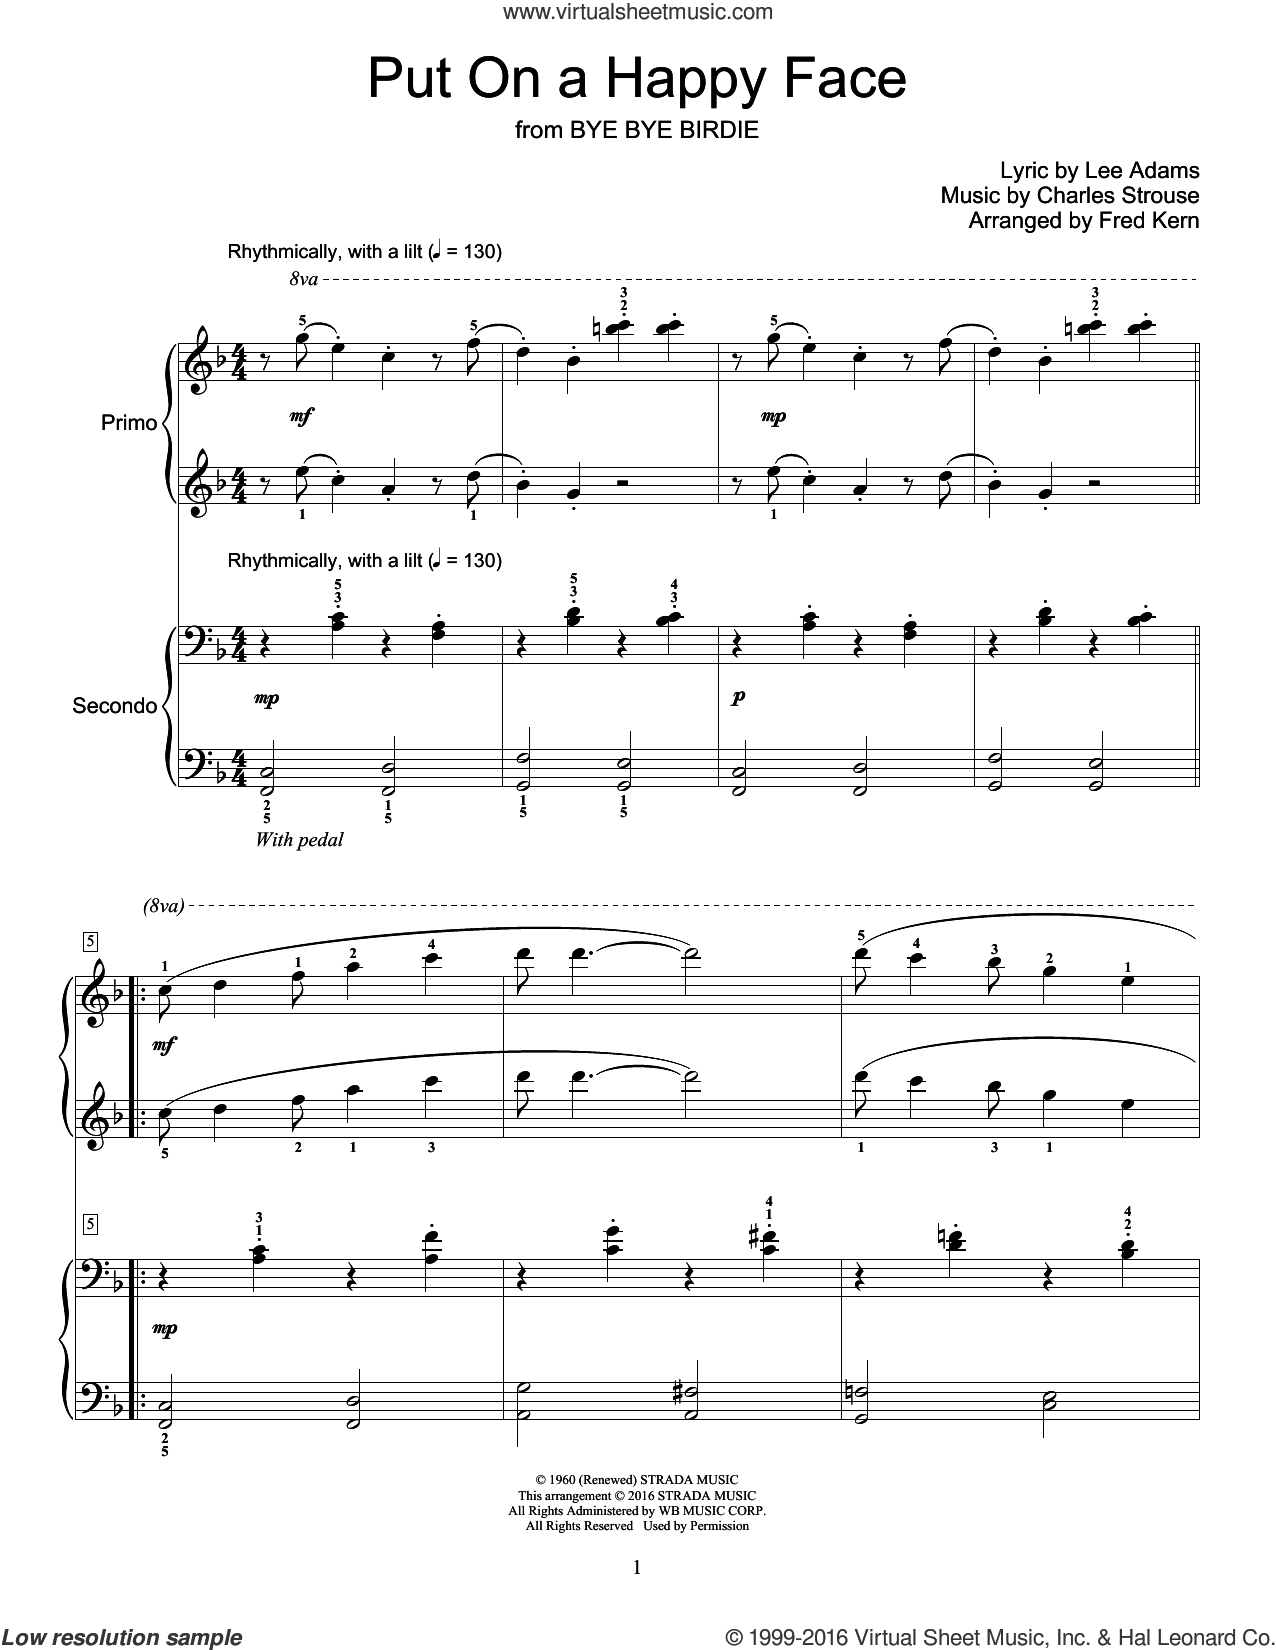 Put On A Happy Face sheet music for piano four hands by Charles Strouse, Fred Kern and Lee Adams, intermediate skill level